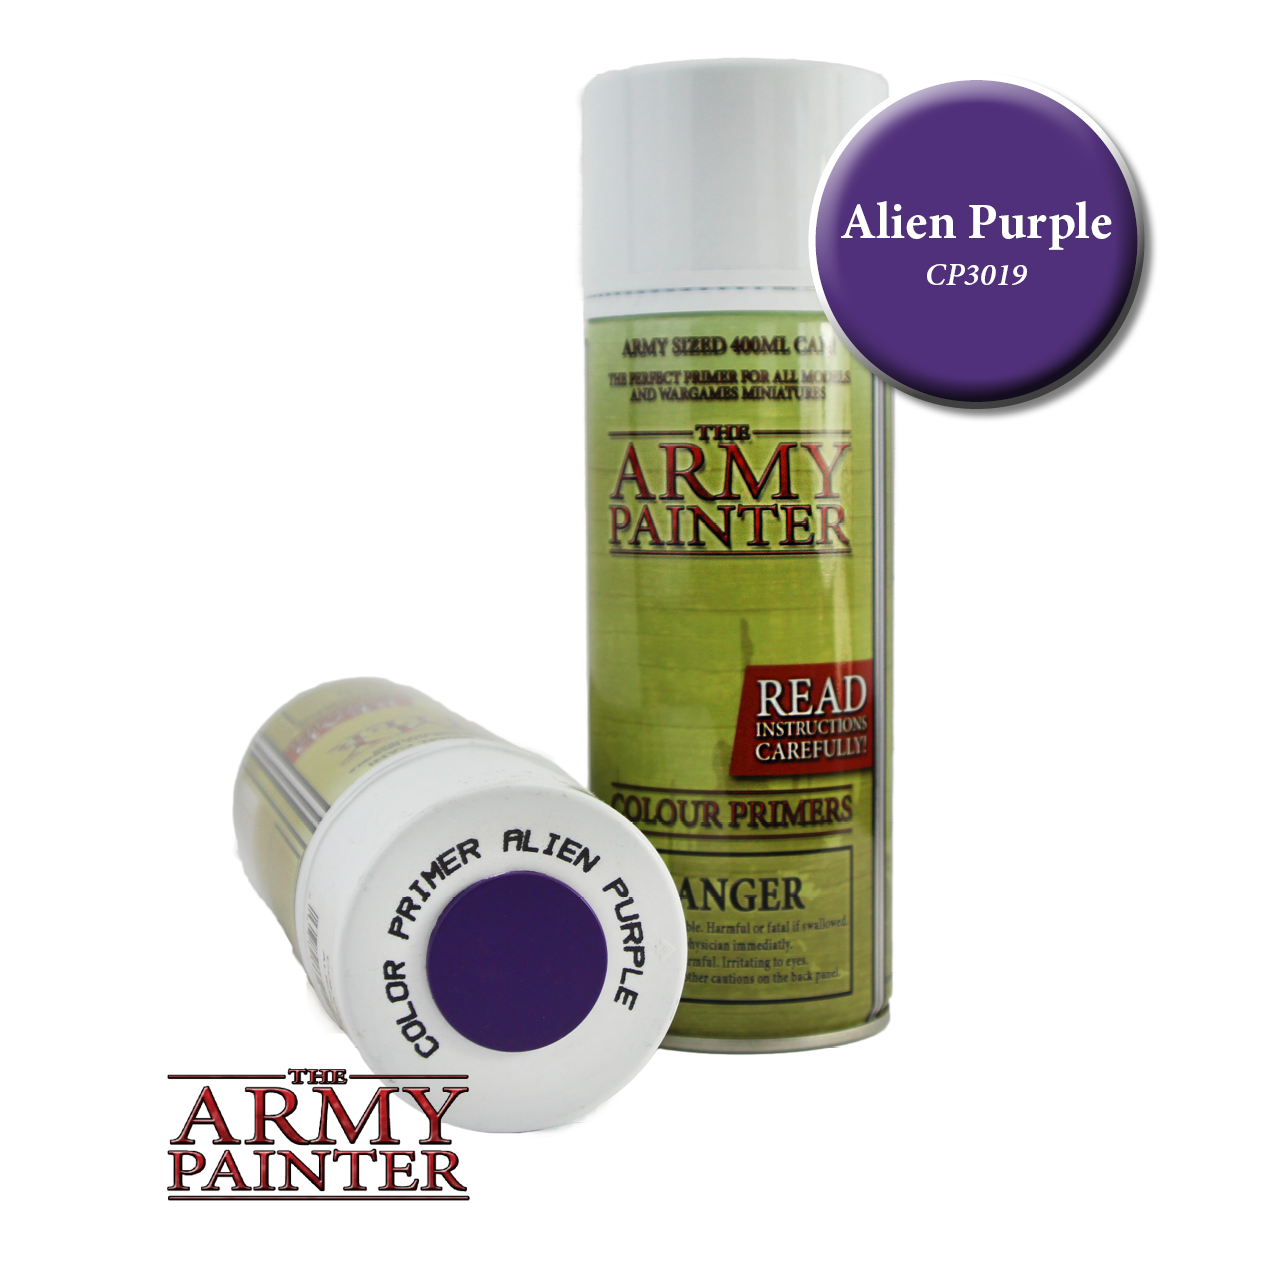 Army Painter - Spray Primer - Alien Purple (Pickup Only) | Elandrial Games Albany